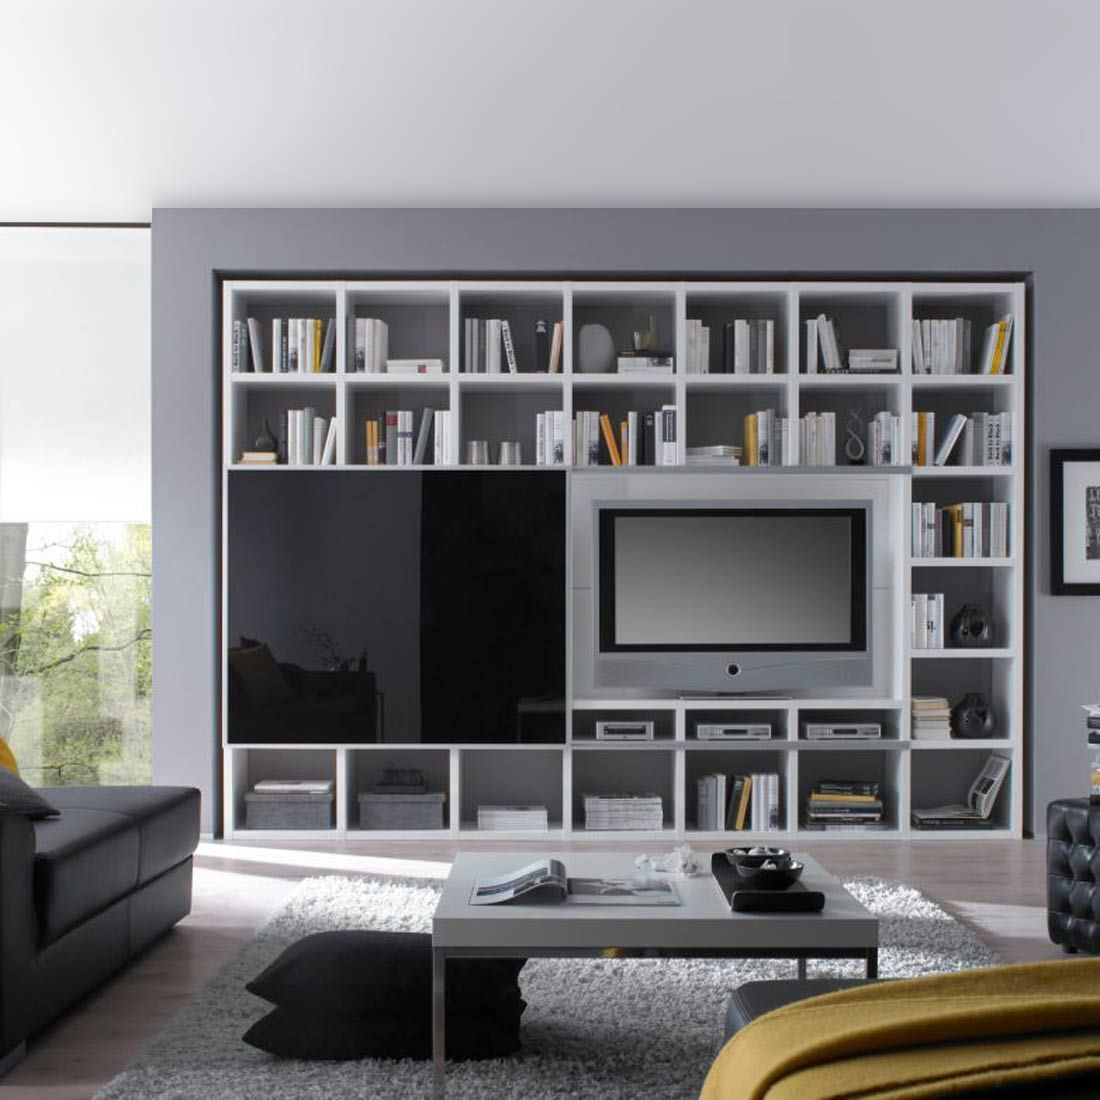 schwarze wohnwand free schwarze wohnwand with schwarze wohnwand fabulous full size of ventura. Black Bedroom Furniture Sets. Home Design Ideas